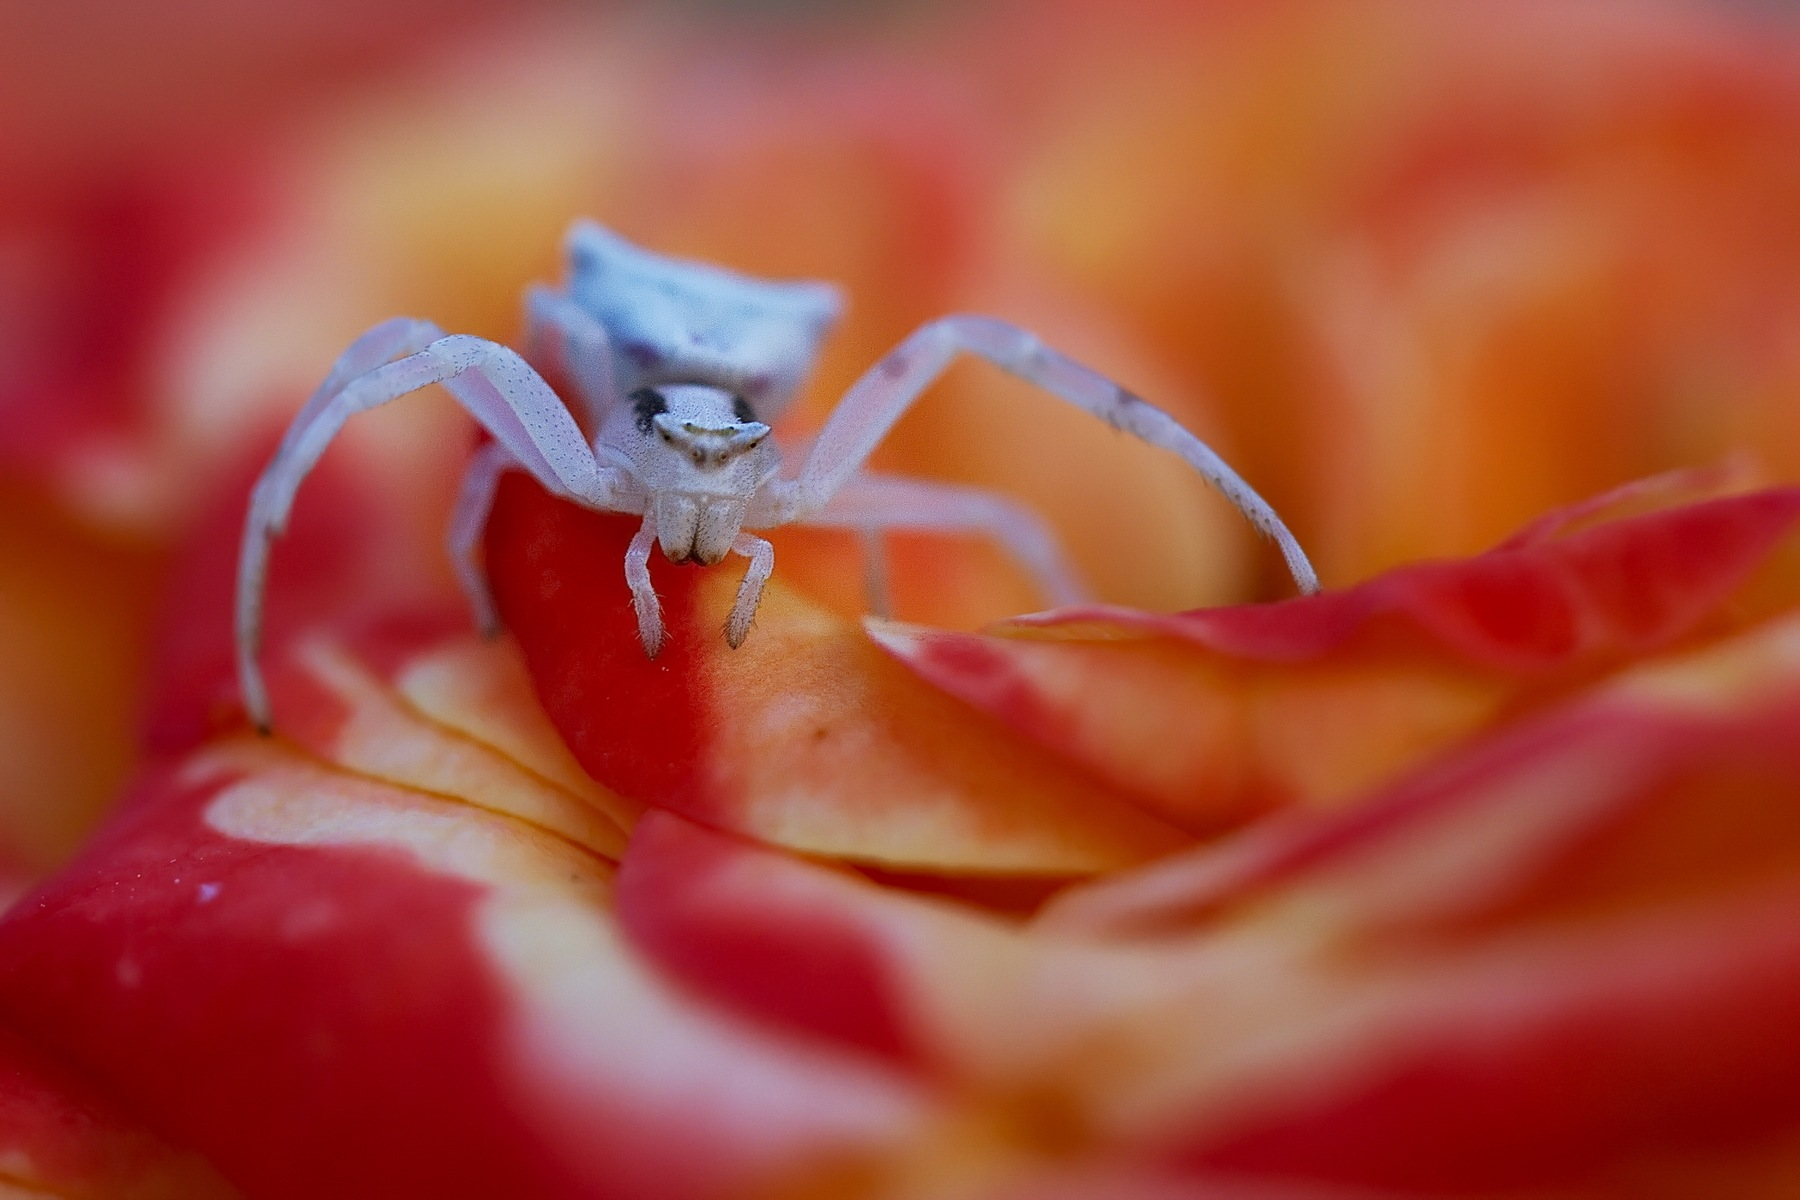 Spider On The Rose by Kassianos Kassianou